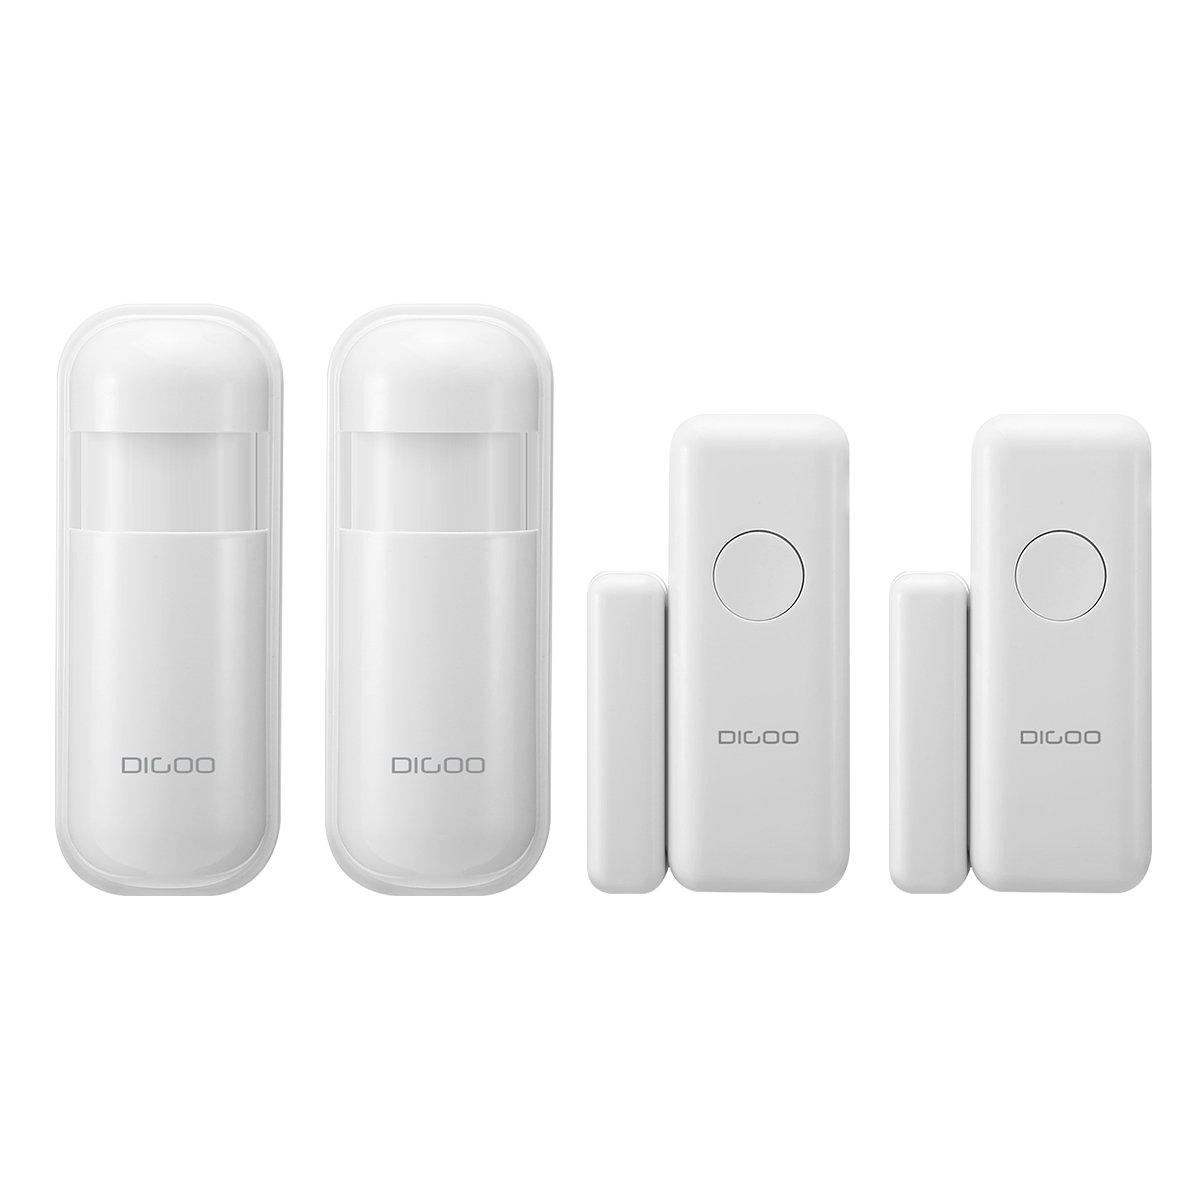 DIGOO DG-HOSA 433MHz Burglar Alarm Sensor, Wireless Windows Doors Sensor and Infrared PIR Motion Detector, Work with Any 433MHz Home Security Alarm System for Home and Business(2 Pack)